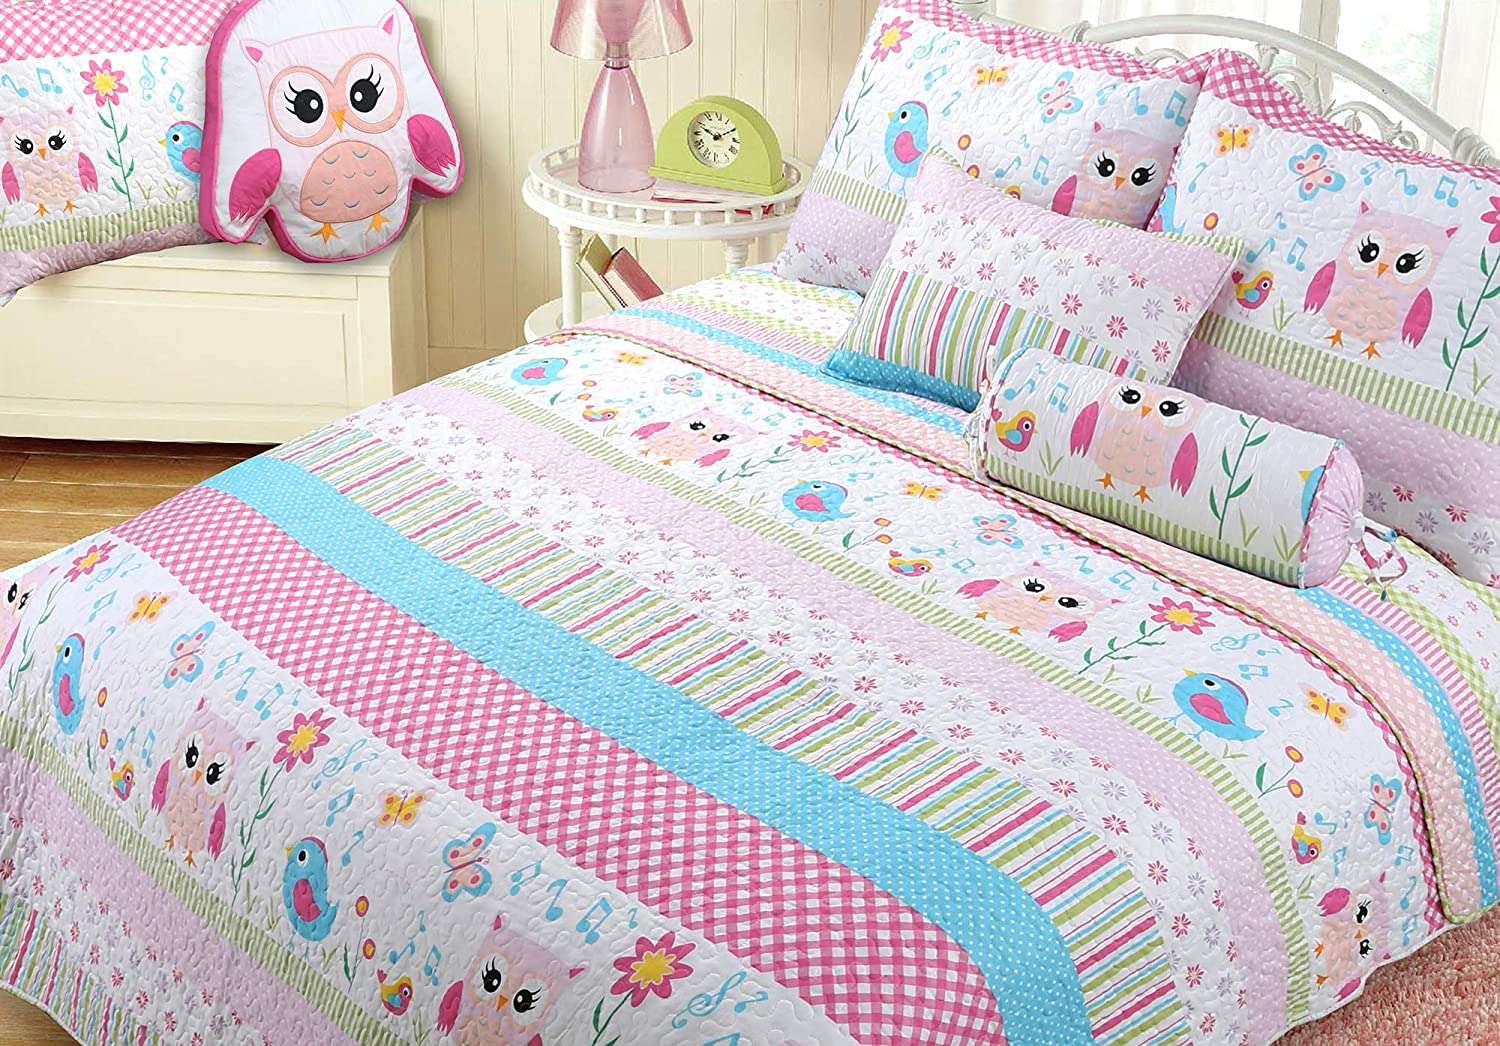 Cozy Line Home Fashions Happy Be super welcome Reversible Jacksonville Mall Bedding Quilt Owl Pink